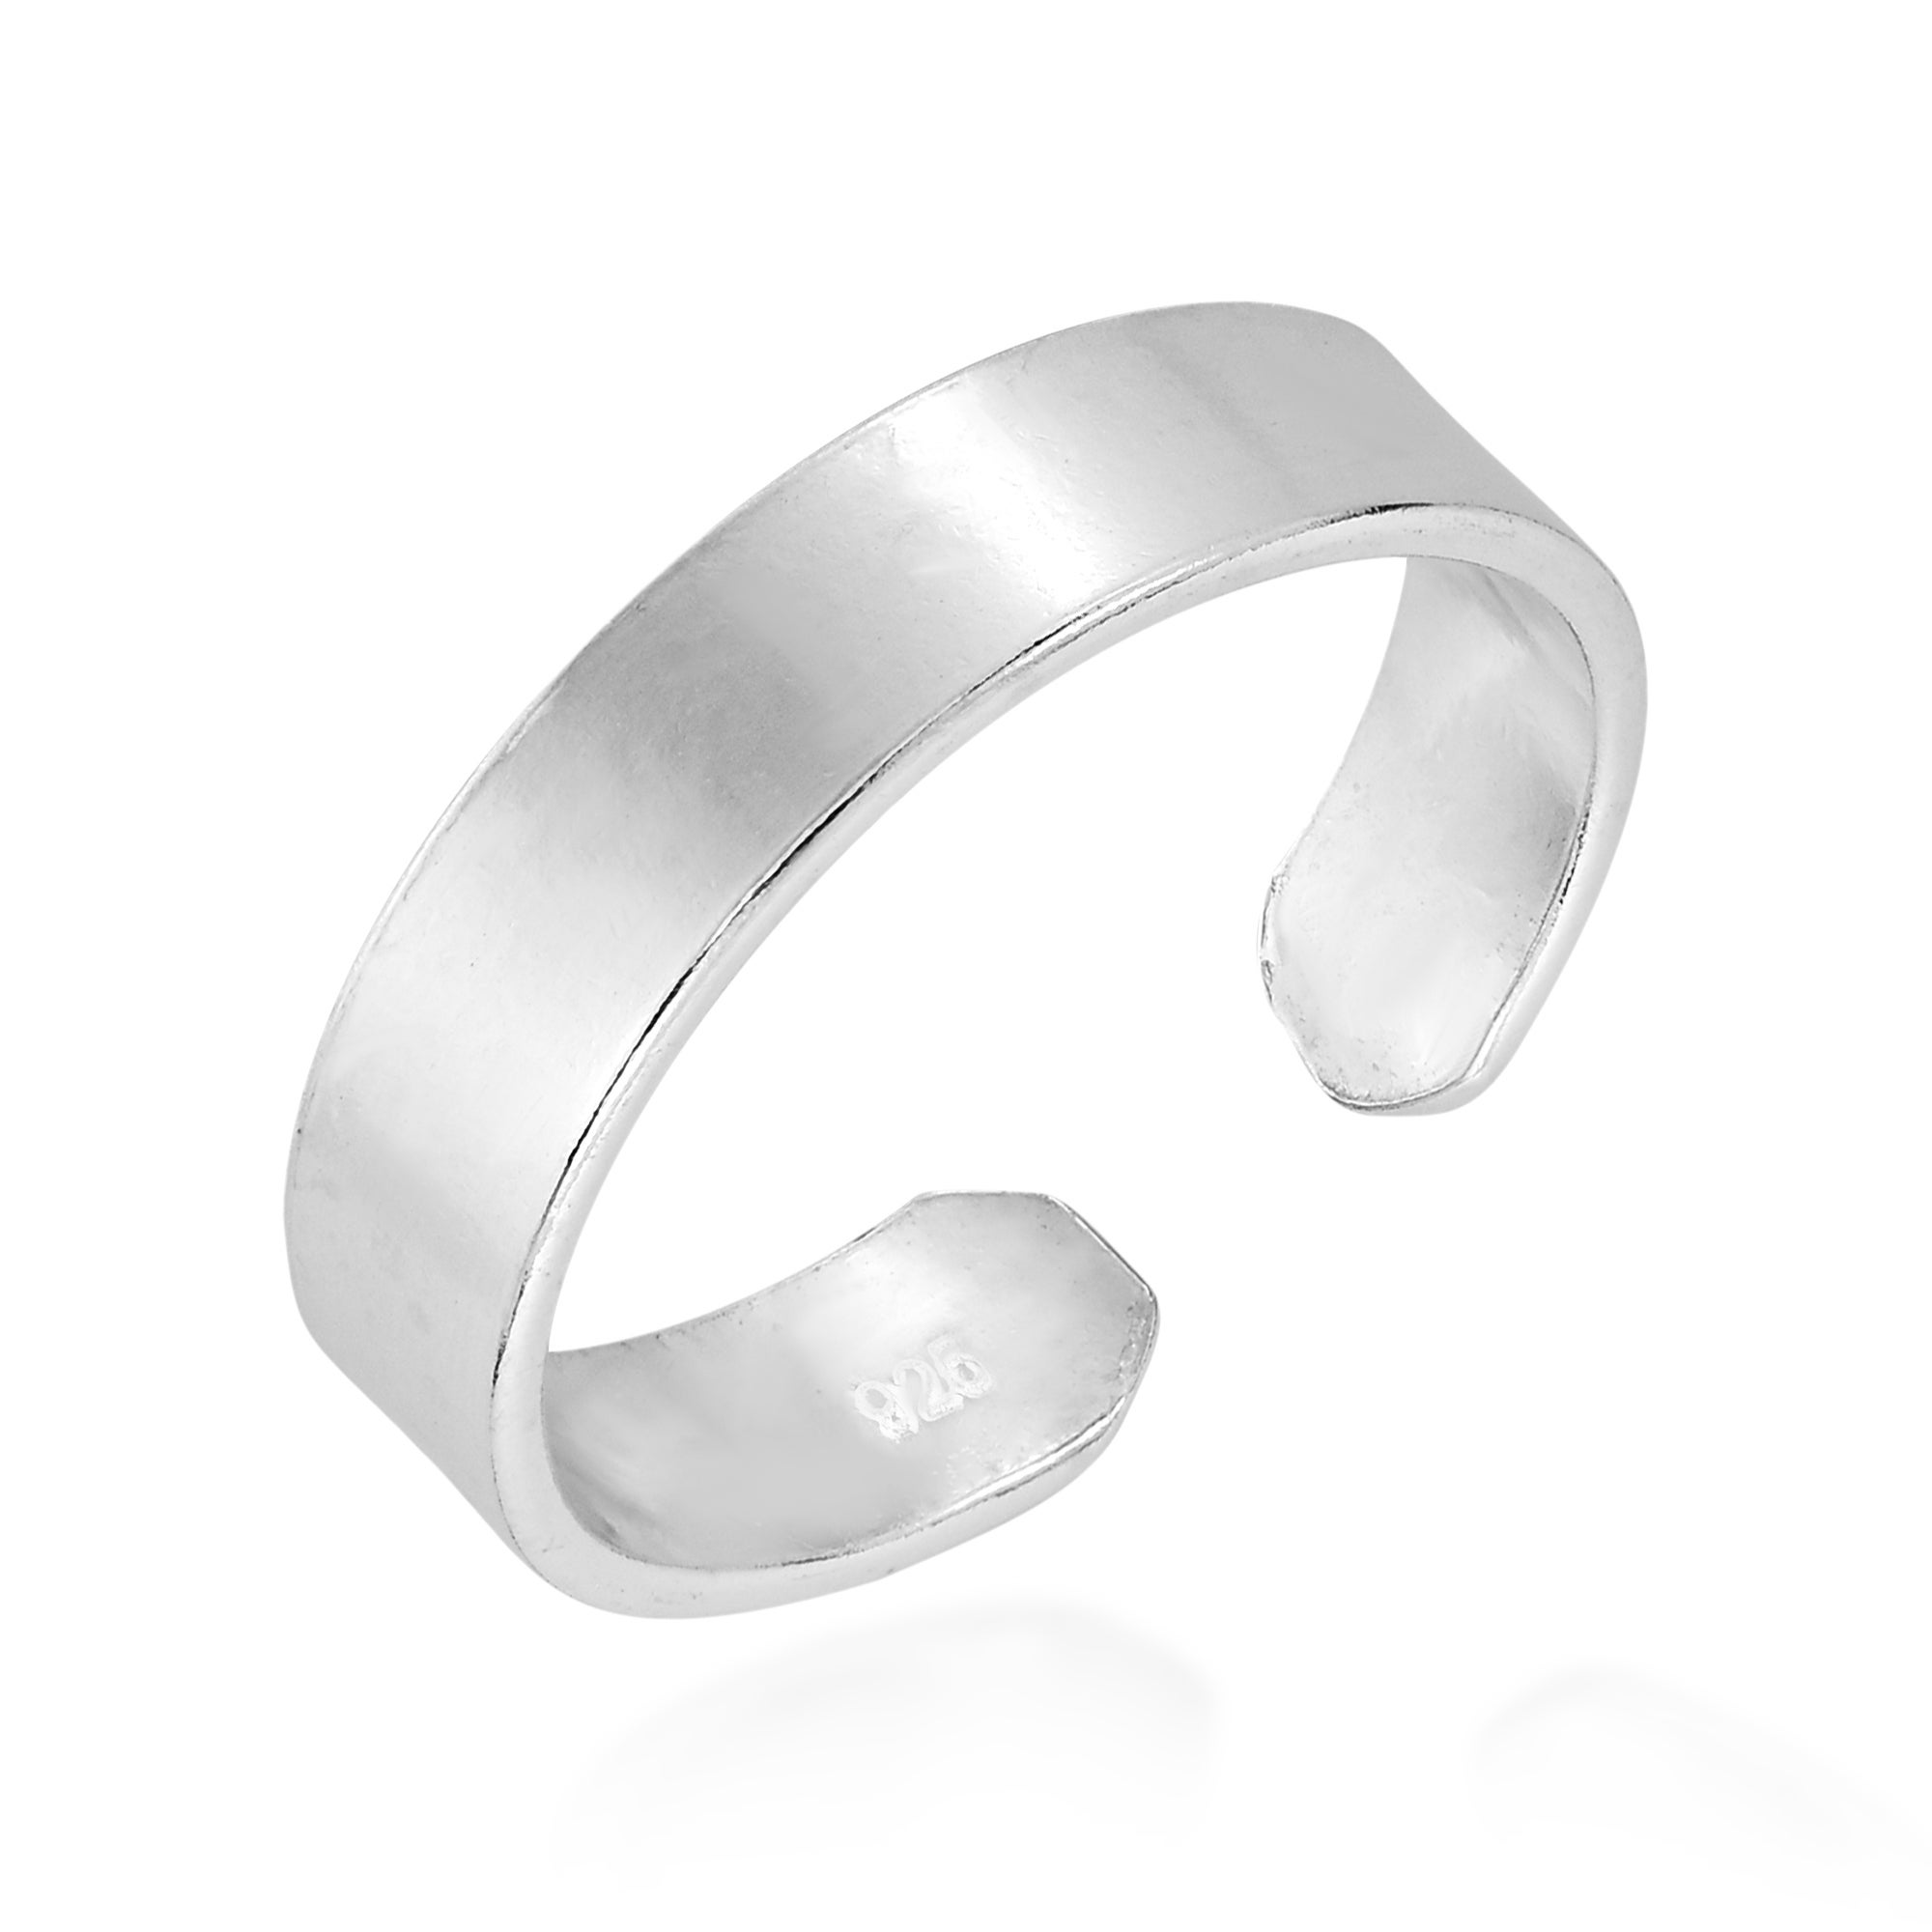 Sterling Toe Ring Adjustable Sterling Silver Toe Ring For Women Handmade Jewelry Gifts For Her Under 20